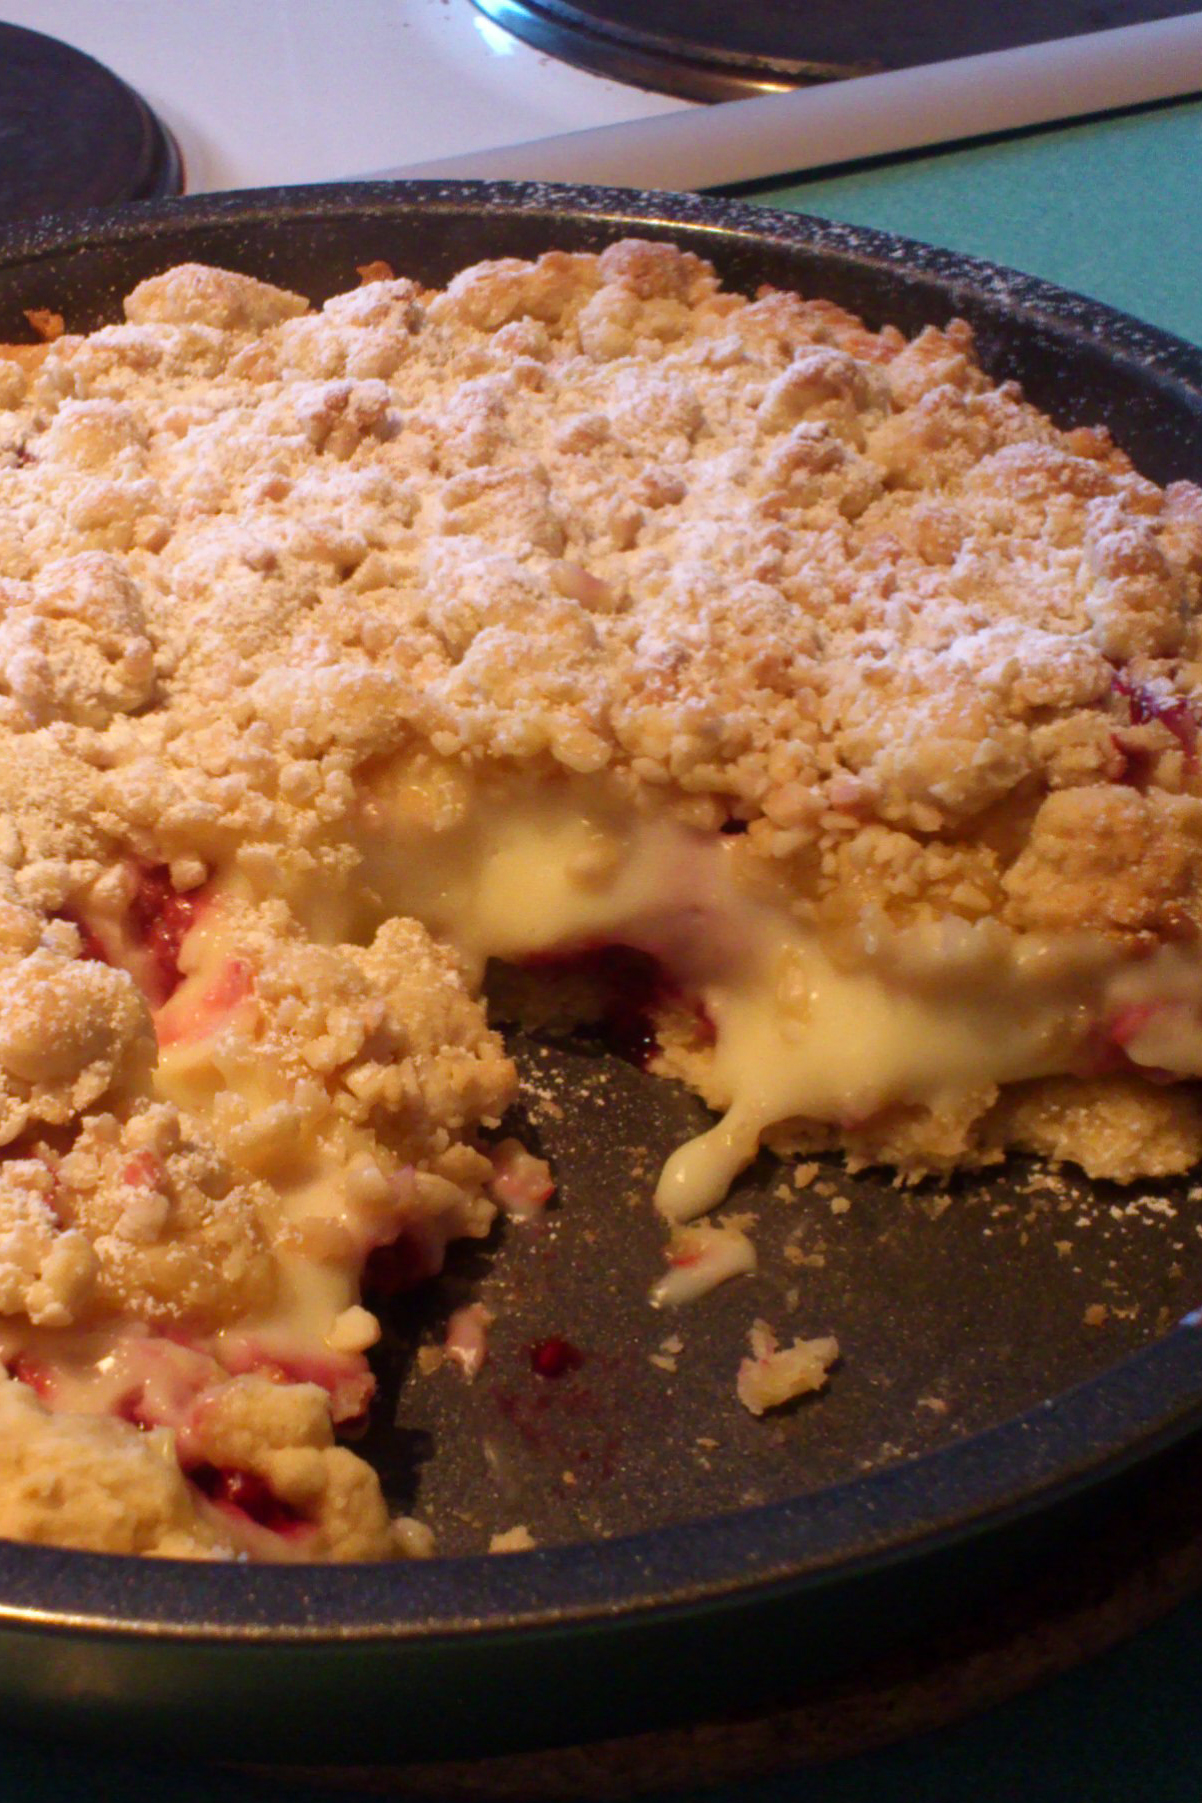 Himbeer-Crumble-Tarte mit Pudding